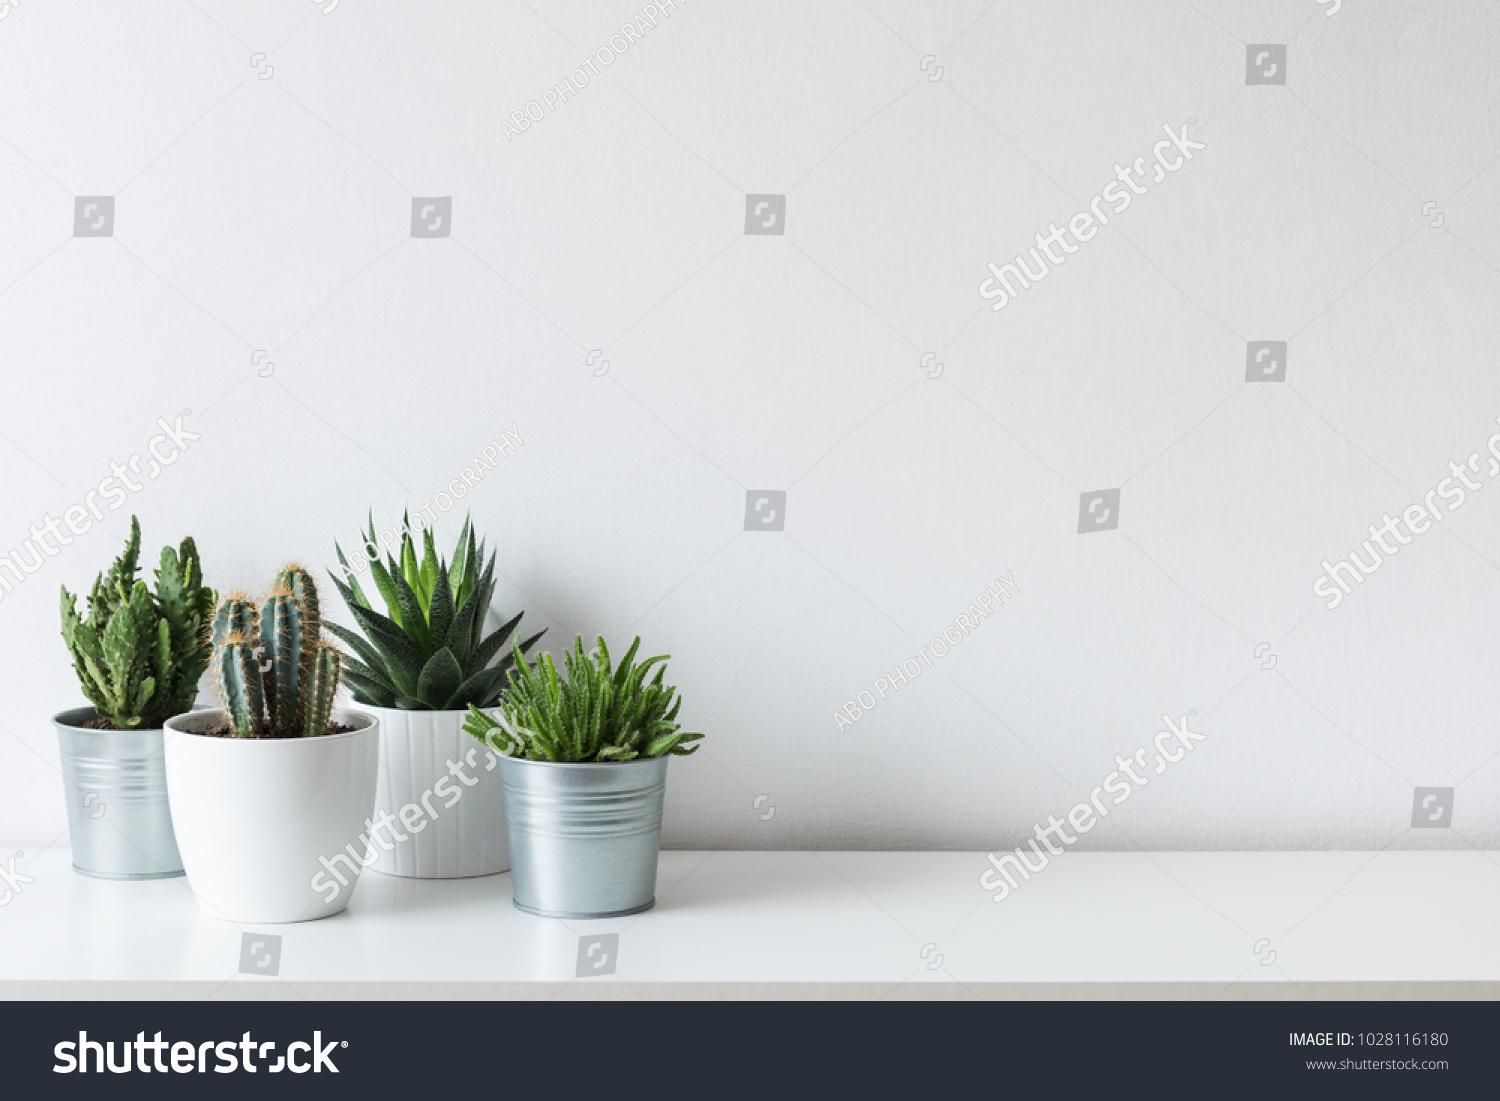 Collection of various cactus and succulent plants in different pots. Potted cactus house plants on white shelf against white wall. #1028116180 - 123PhotoFree.com